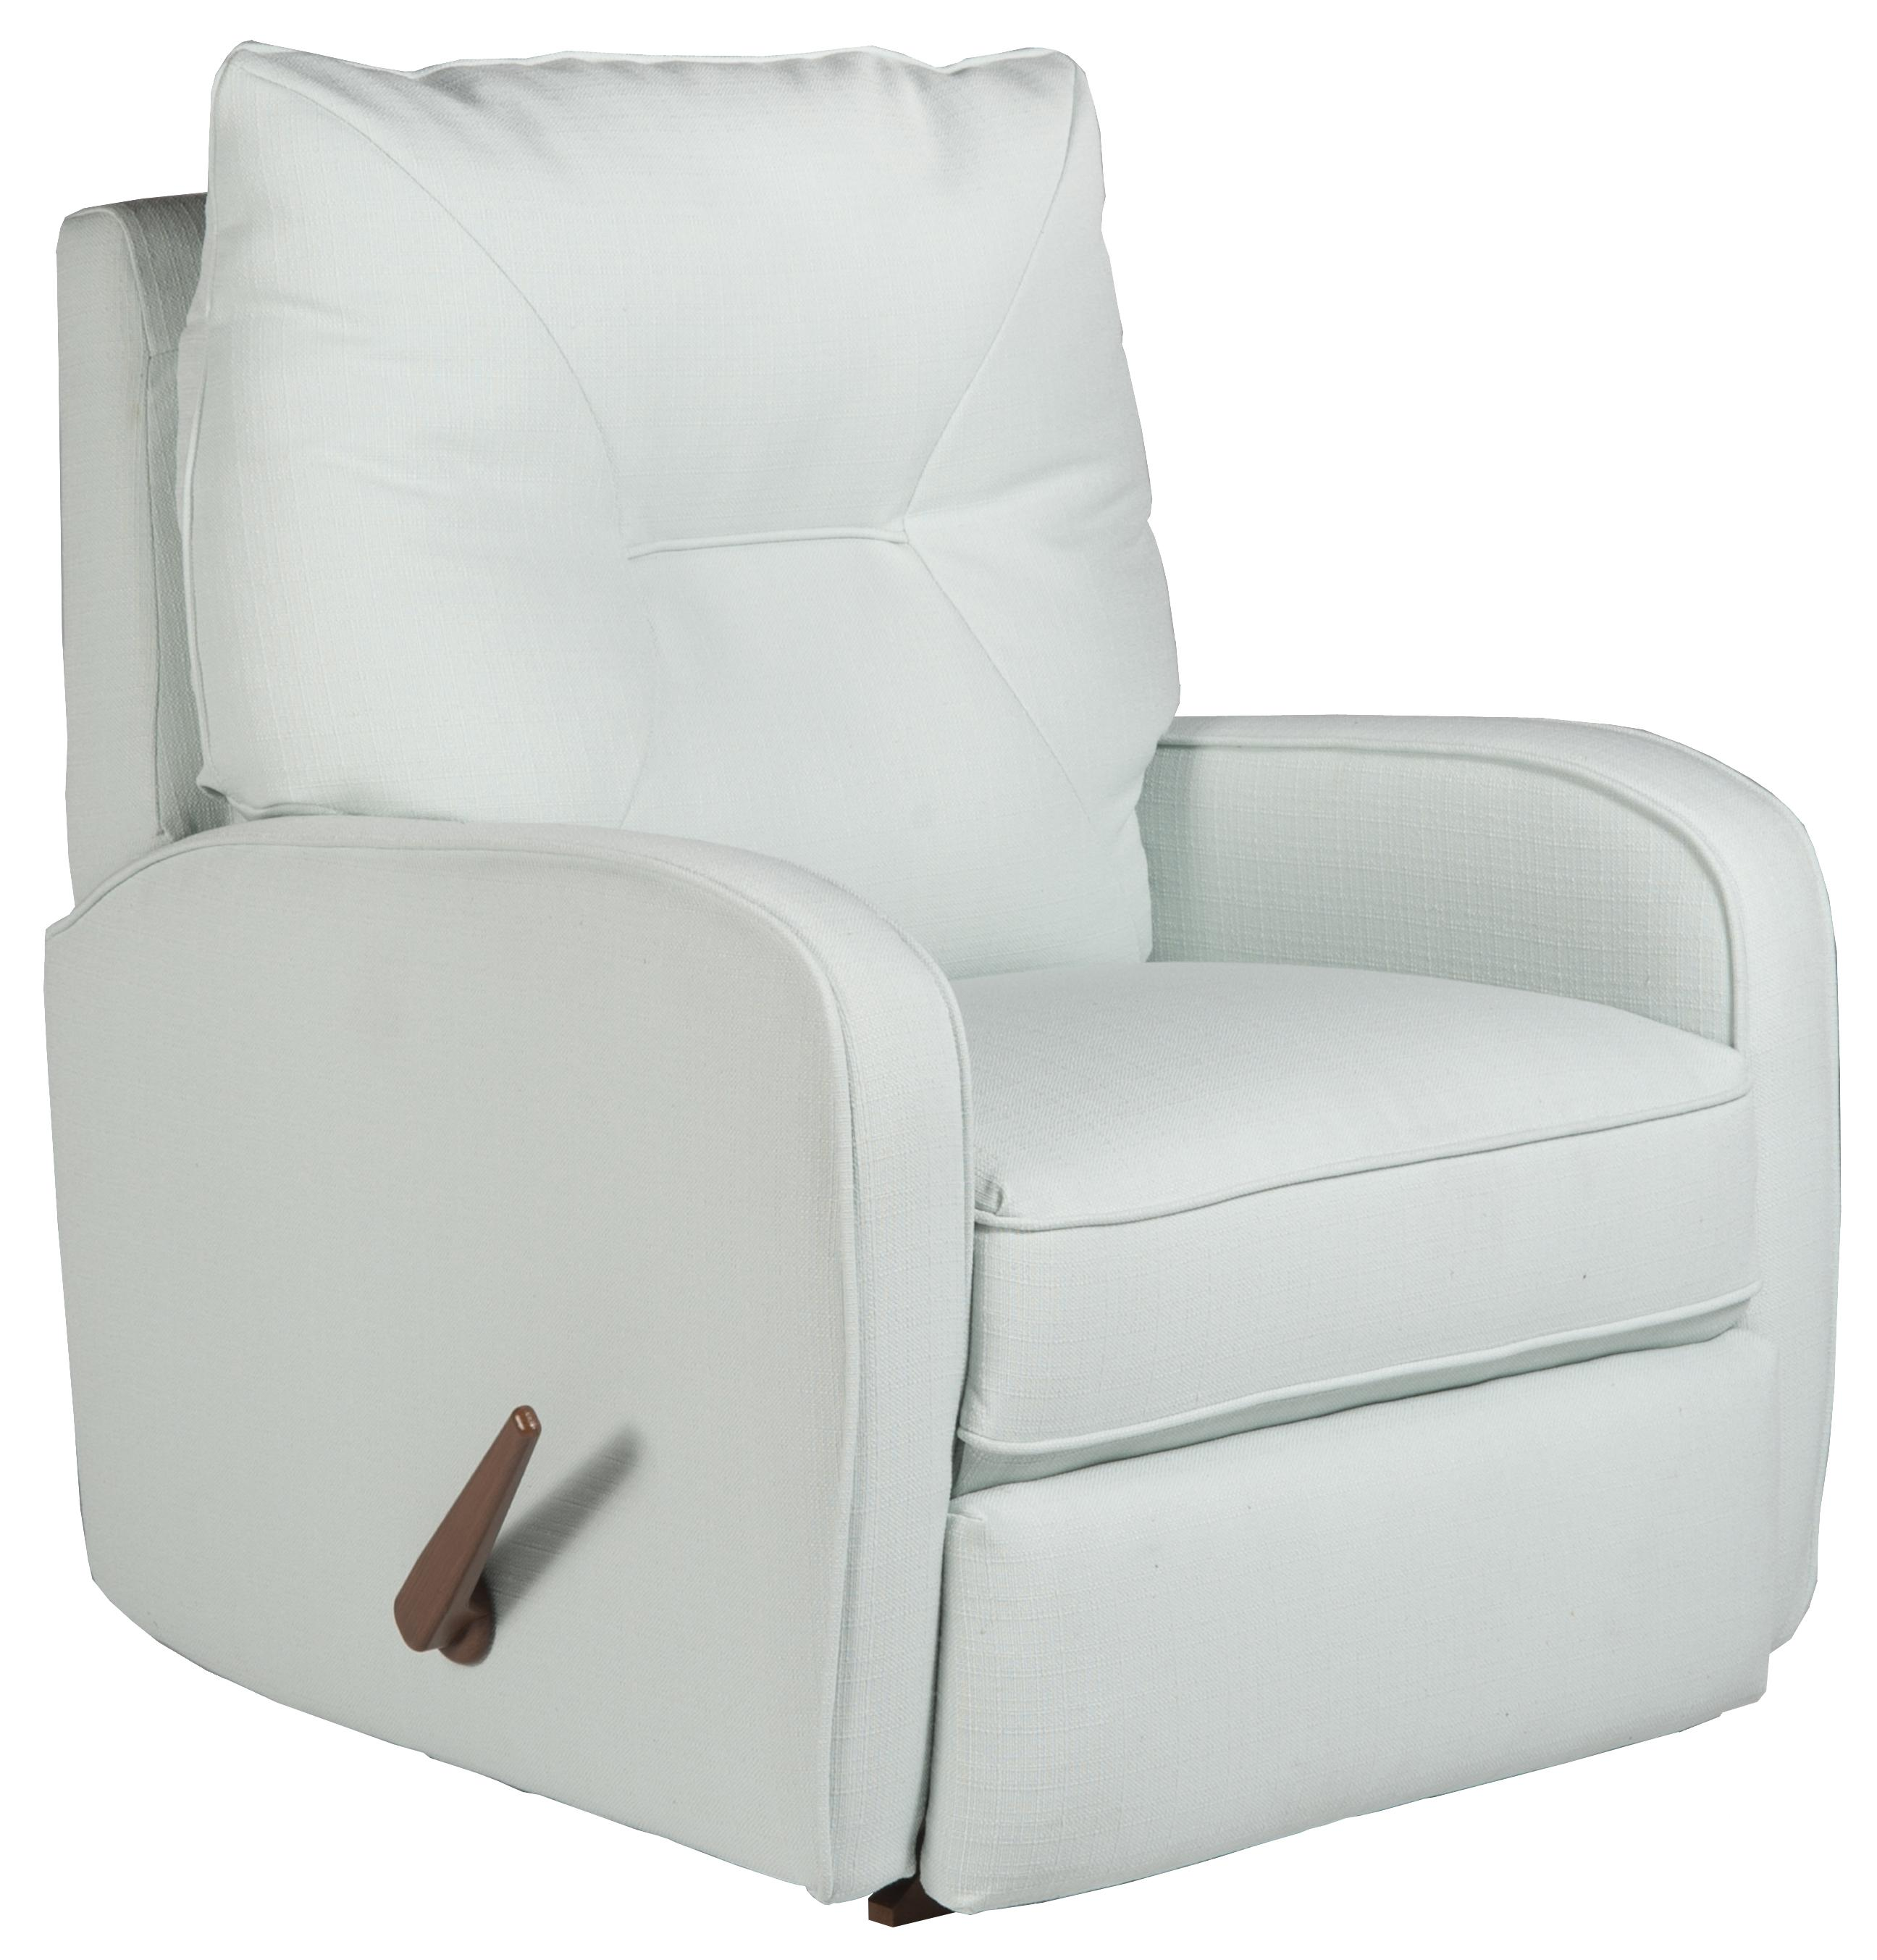 Best Home Furnishings Recliners - Medium Ingall Power Wallhugger Recliner - Item Number: 2AP04